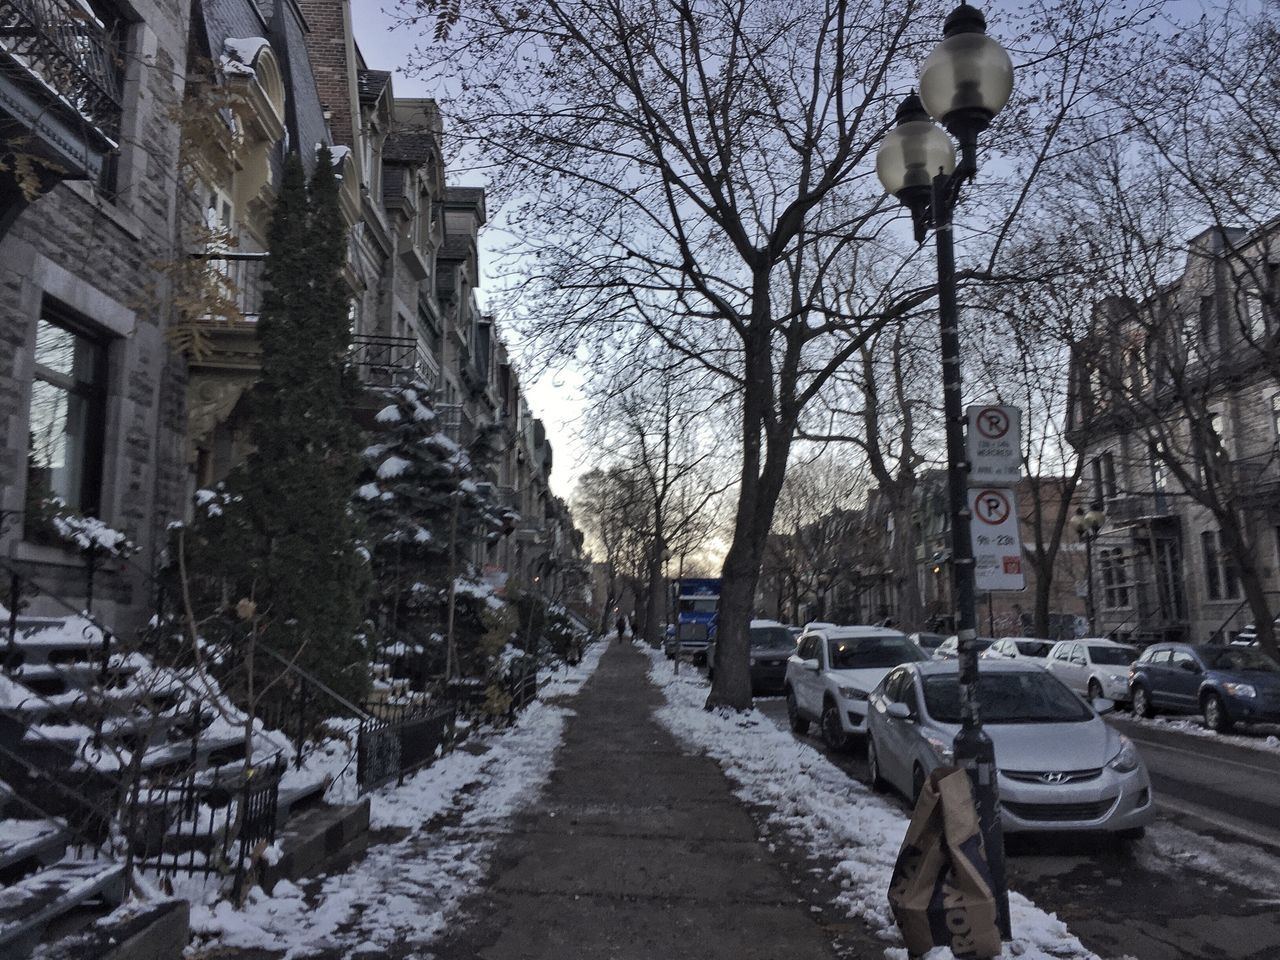 Early Winter Sidewalk Building Exterior Architecture Tree Car The Way Forward Built Structure Land Vehicle Road City Outdoors Bare Tree No People Sky